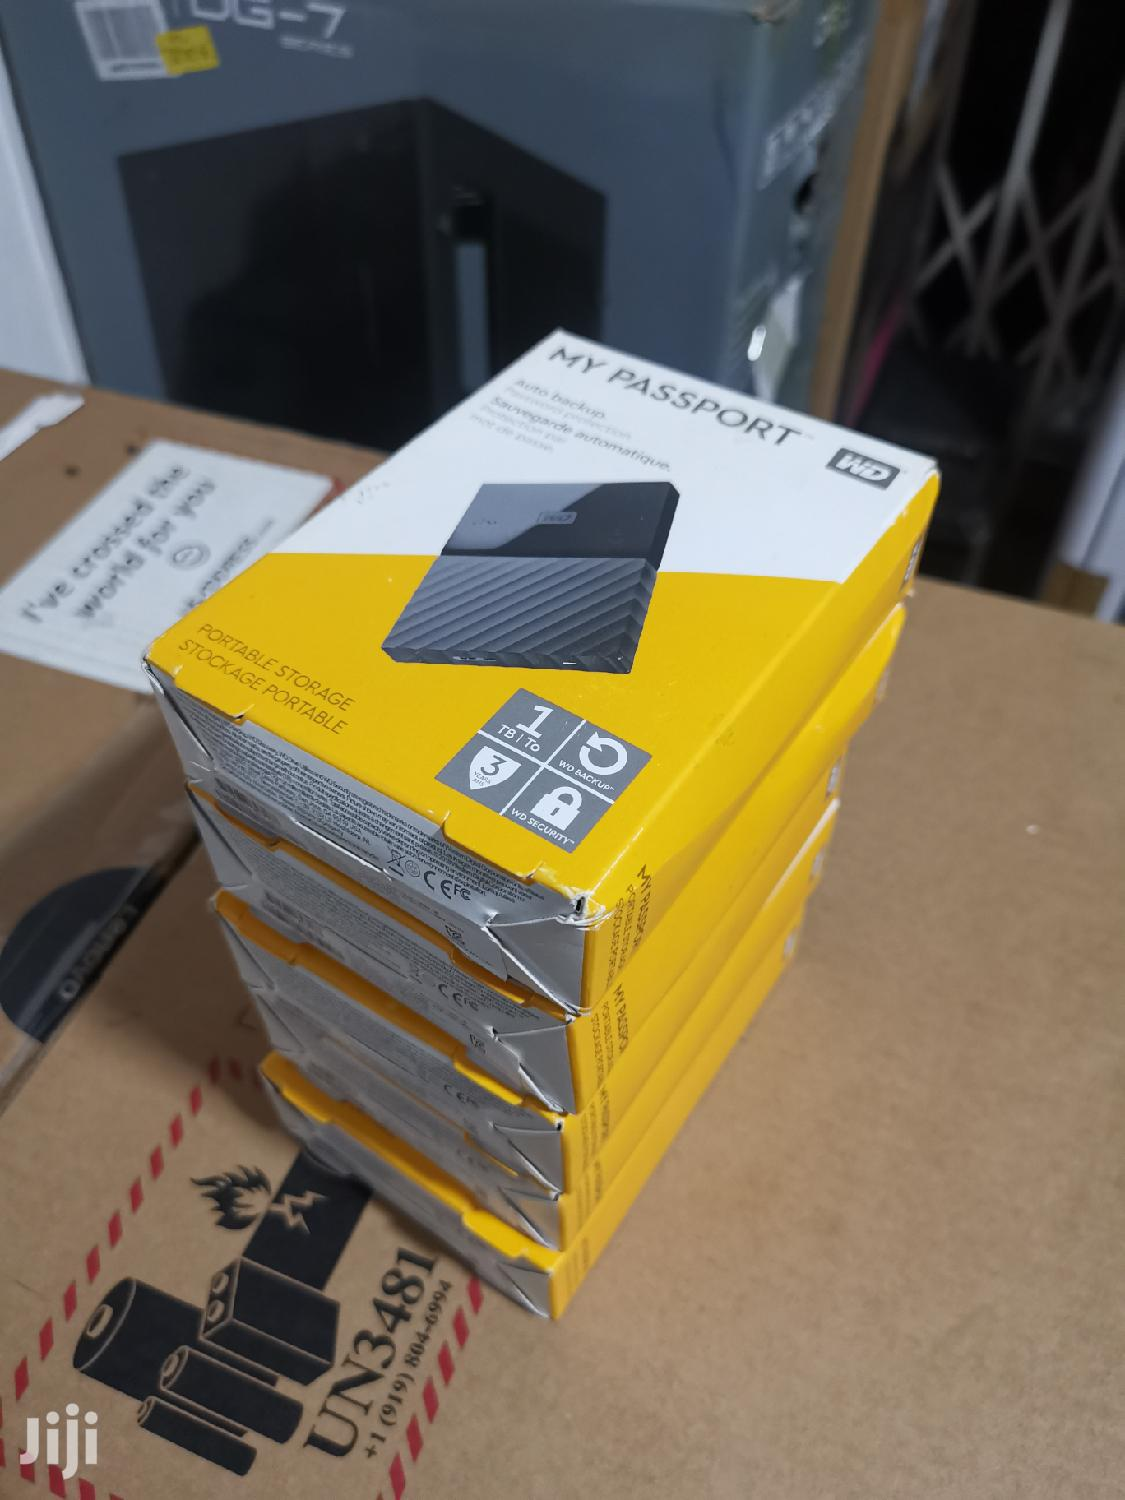 Western Digital Passport 1tb | Computer Hardware for sale in Adenta Municipal, Greater Accra, Ghana